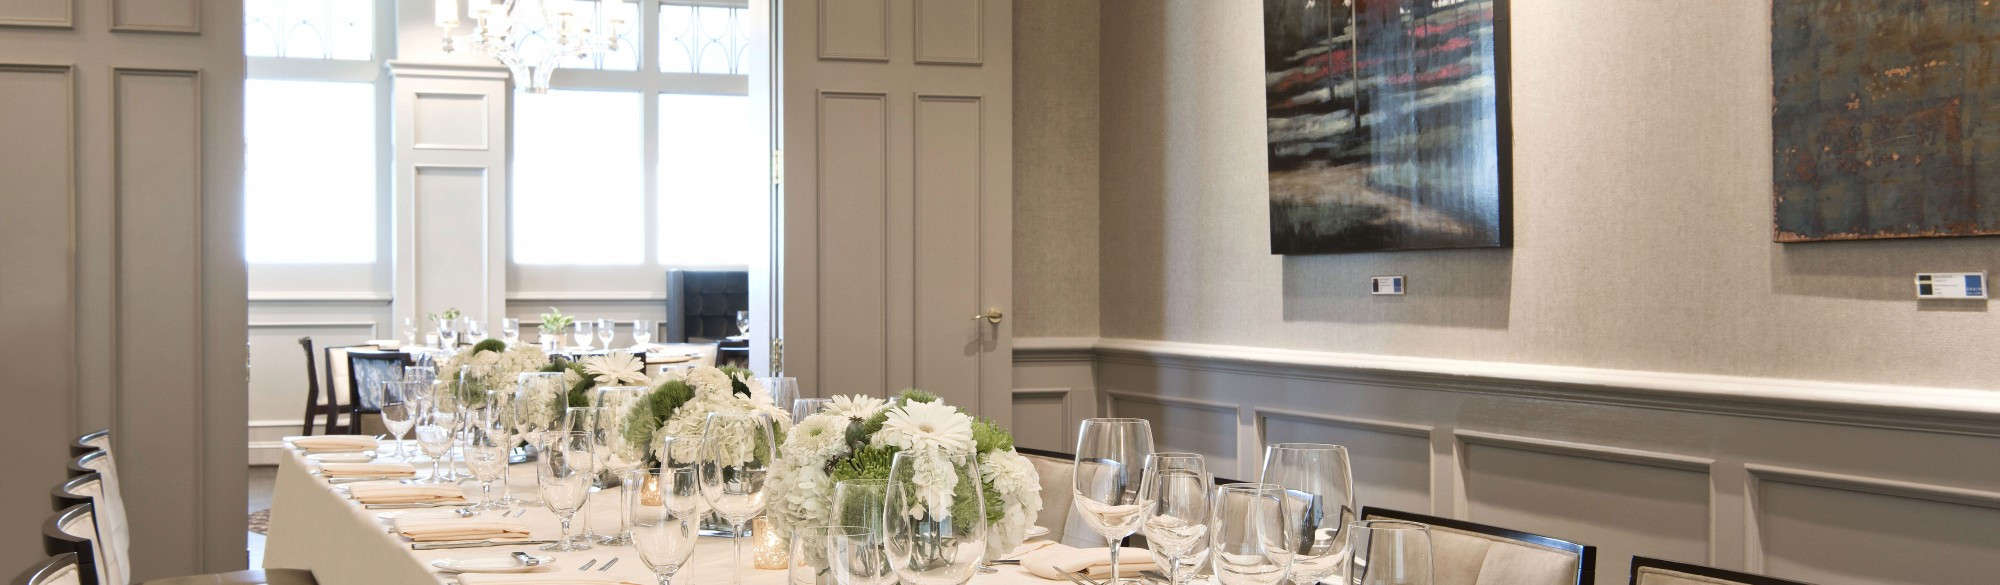 Private Dining Room at Gallery Restaurant Charlotte